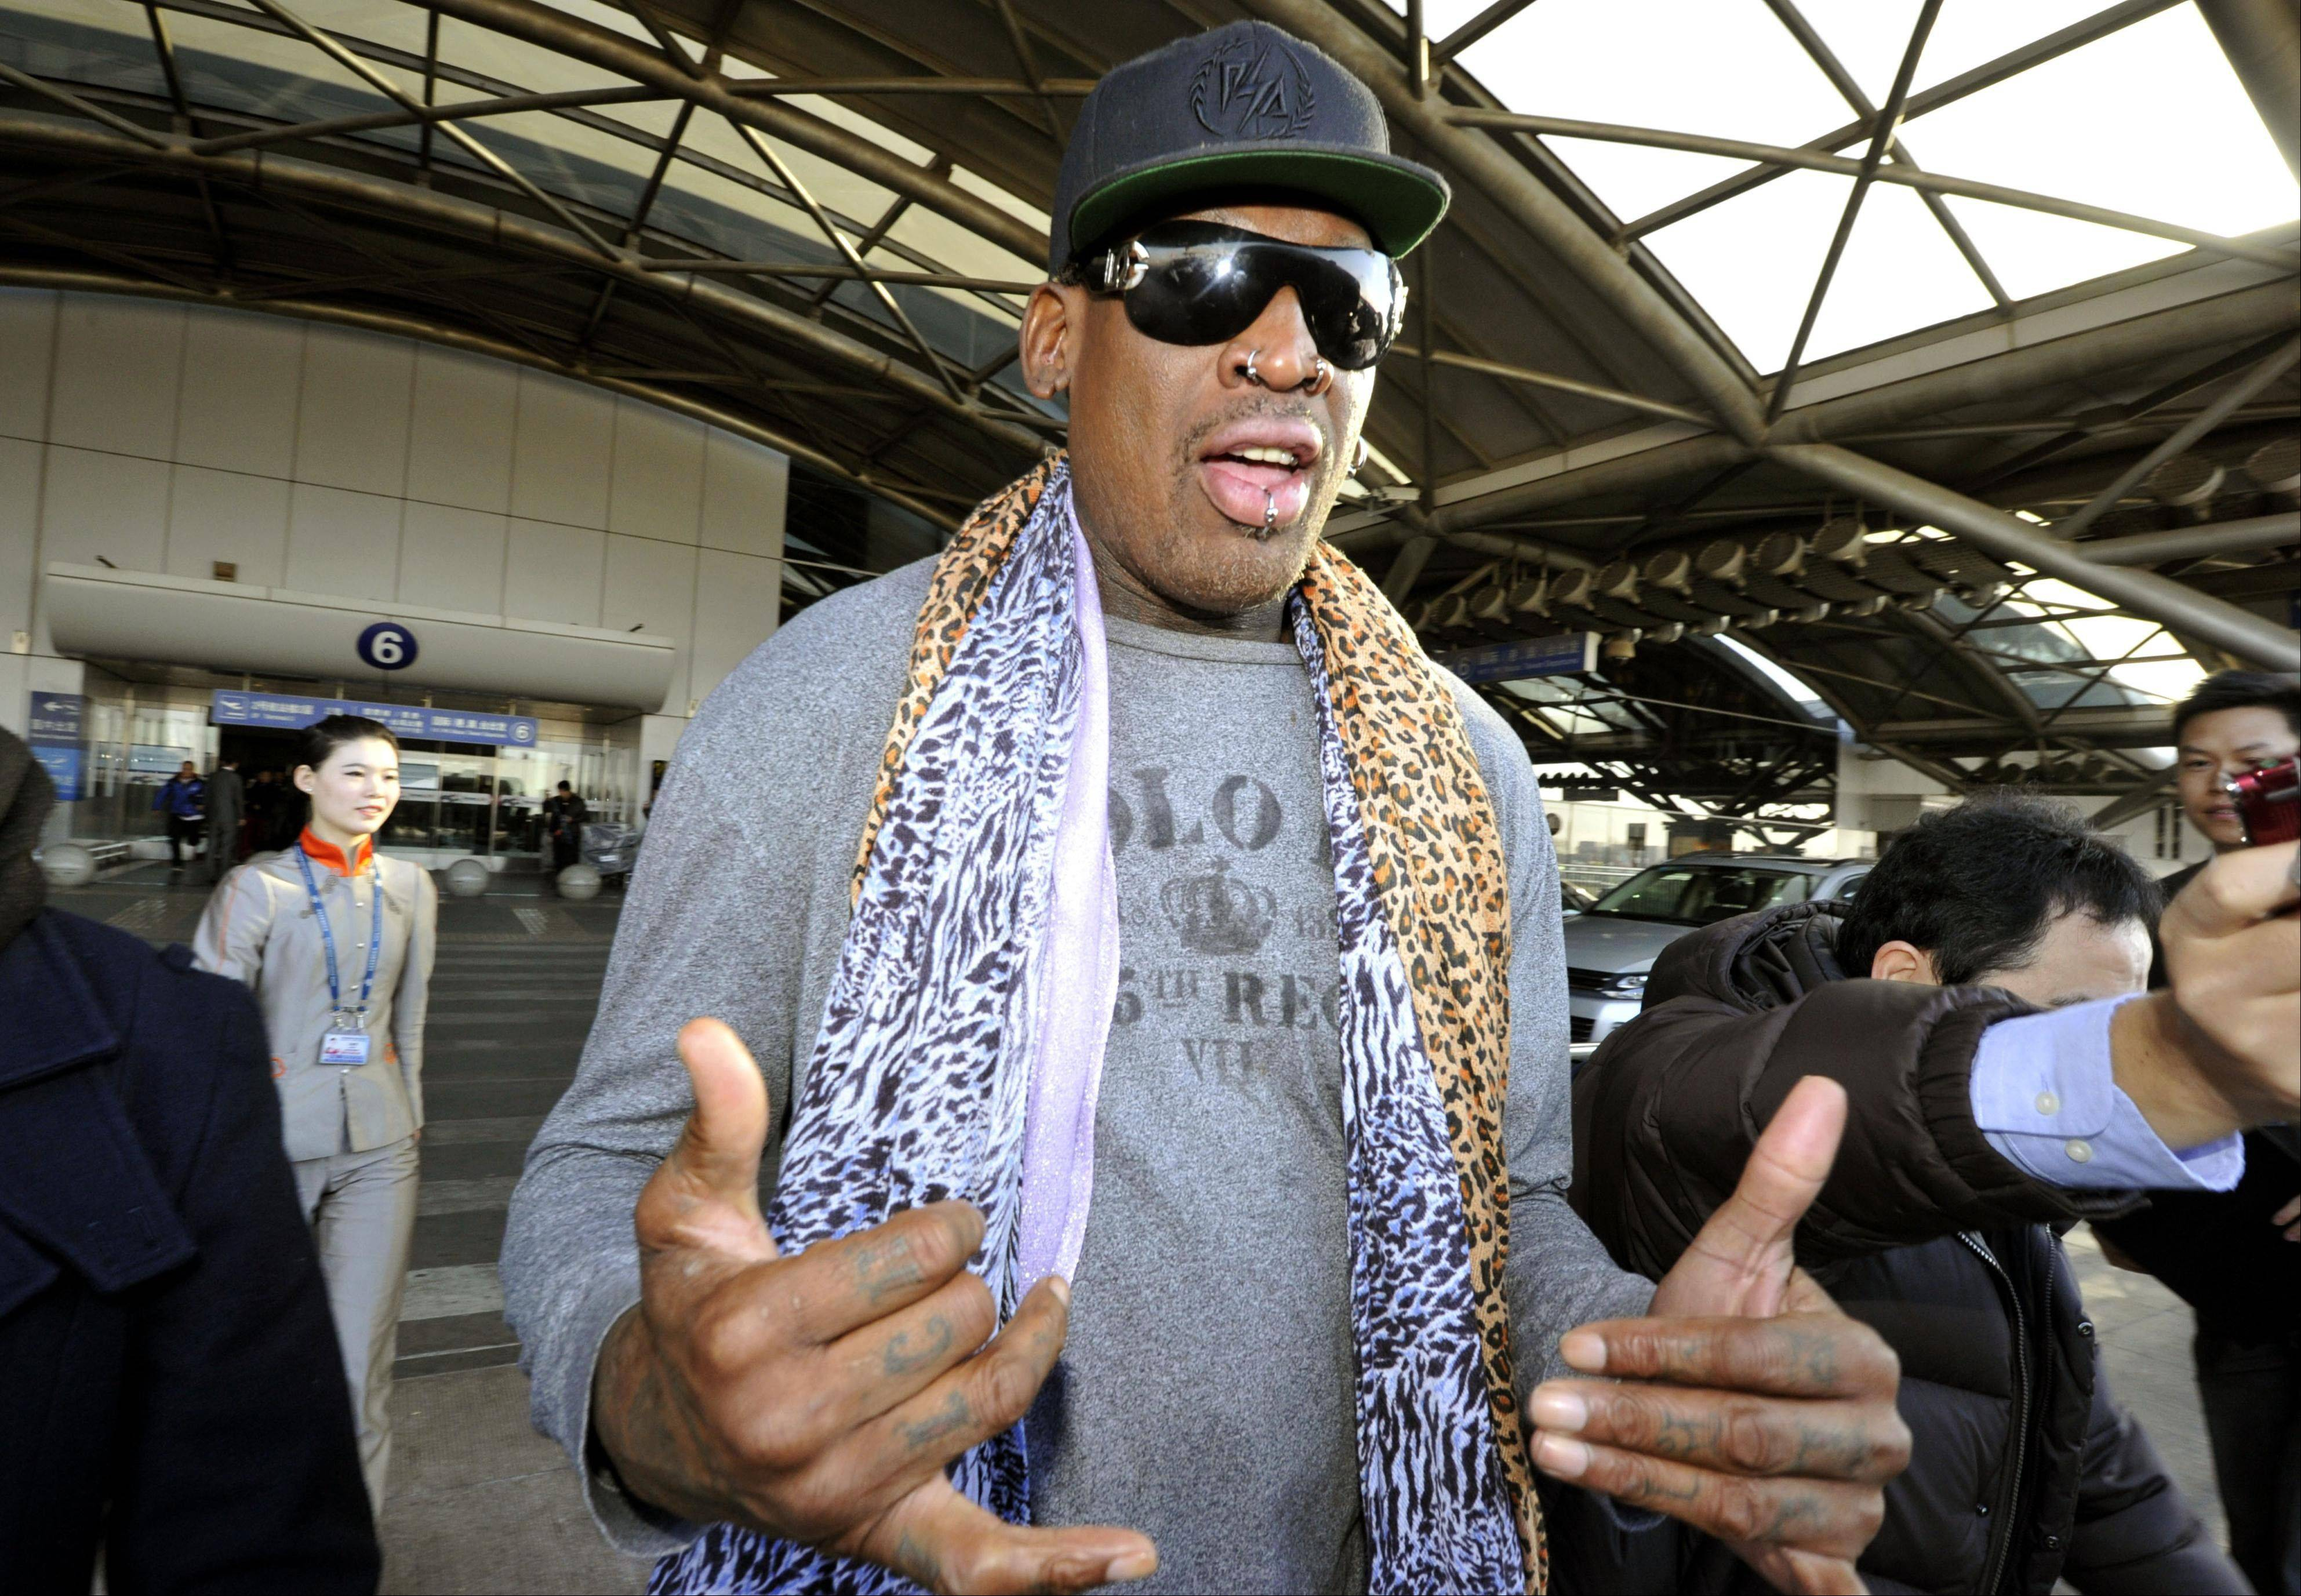 Former basketball star Dennis Rodman speaks to journalists upon arrival at the capital airport in Beijing from Pyongyang, North Korea, Monday. Rodman left North Korea on Monday, but didn�t answer questions from the media on whether he had met with leader Kim Jong Un on his latest visit.